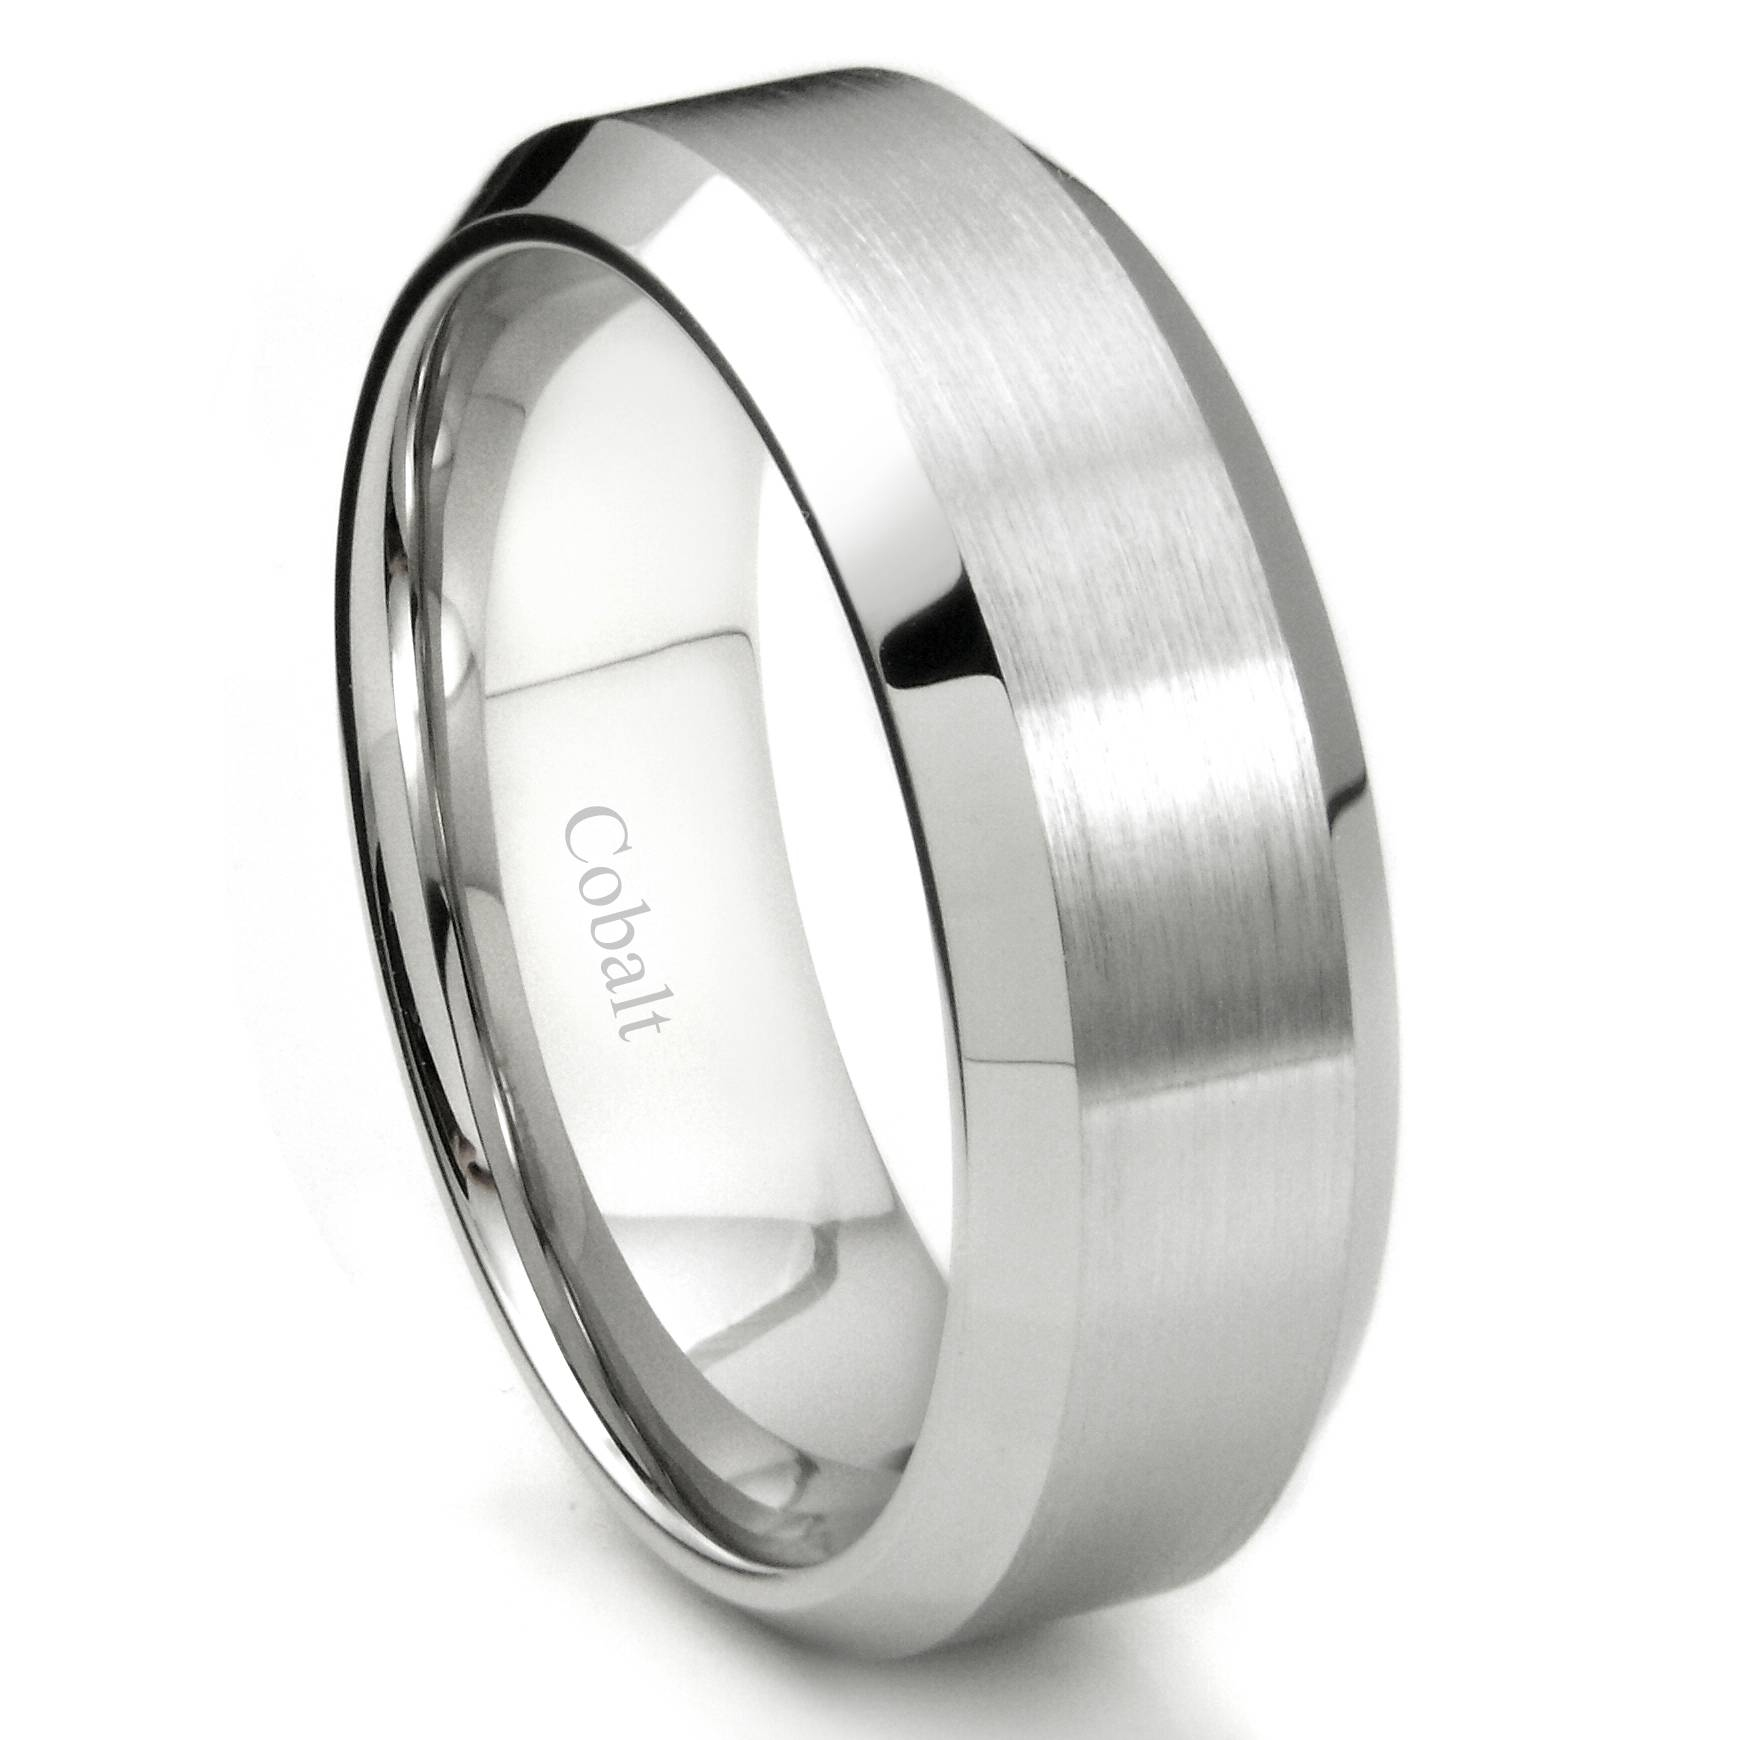 Cobalt Xf Chrome 8Mm Brush Finish Bevel Edge Wedding Band Ring With Regard To Cobalt Wedding Rings (View 7 of 15)